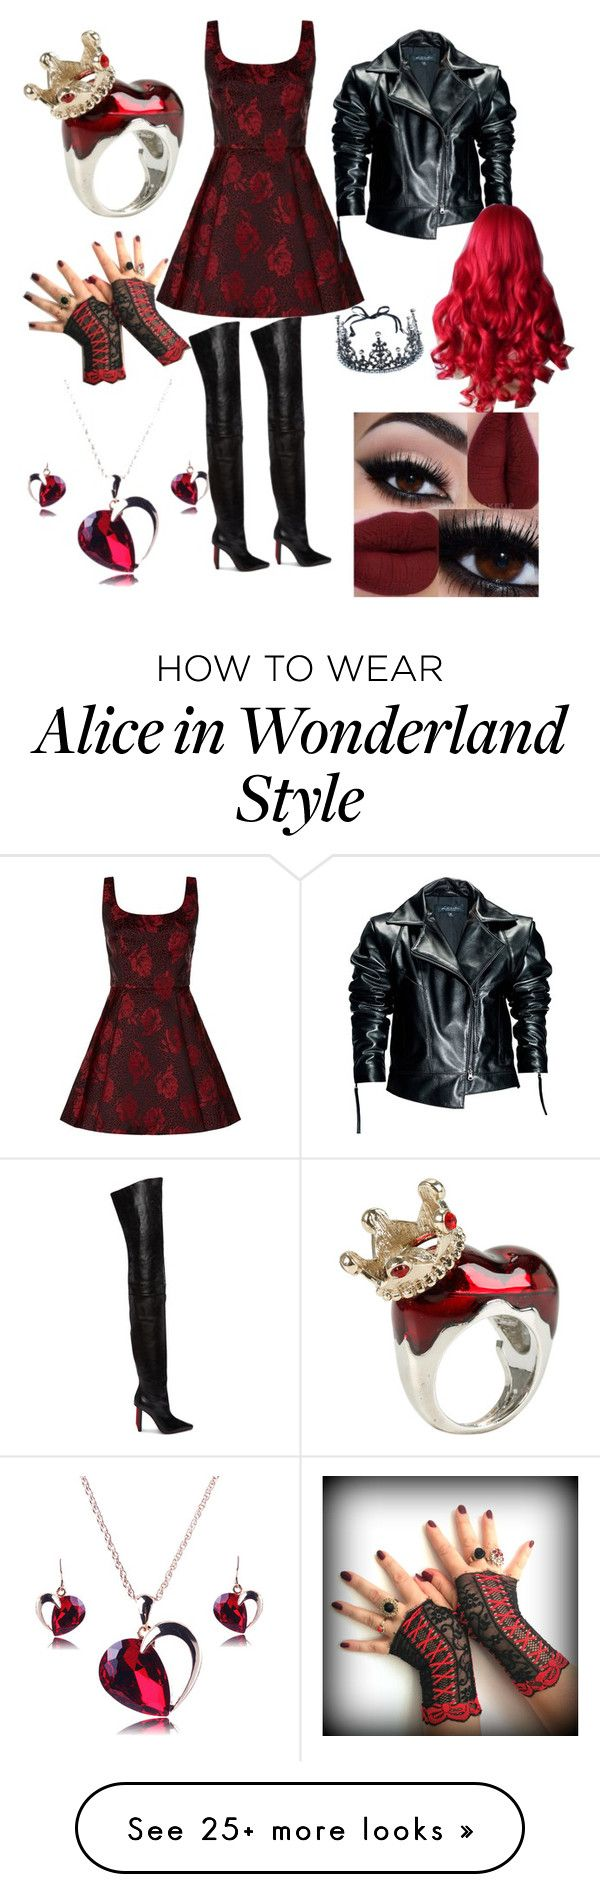 """red queen ❤"" by zombifiedlover on Polyvore featuring Alice + Olivia, Vetements, Leka, Disney and REGALROSE"